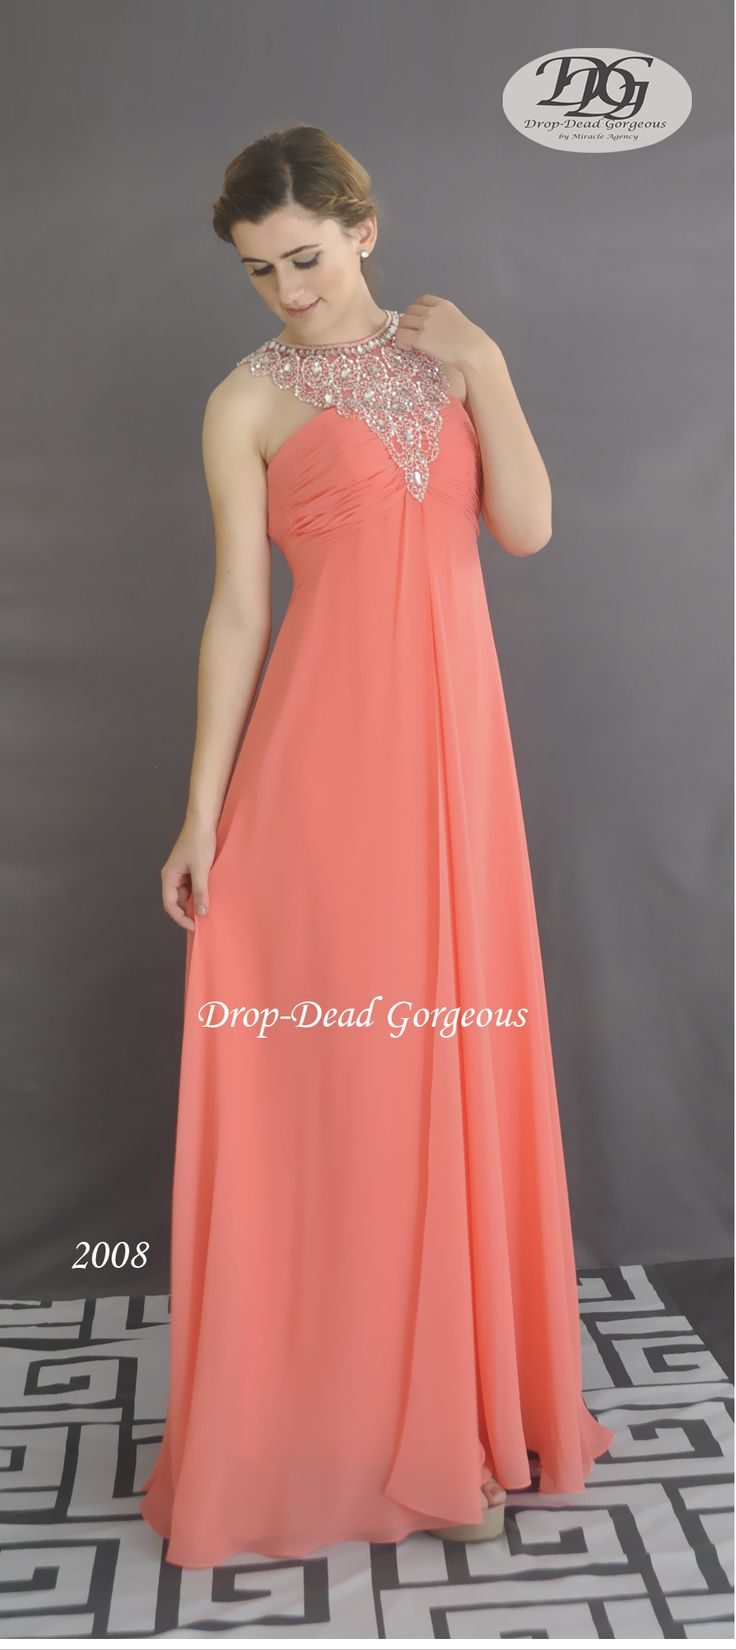 Forever Popular: School Formal and Bridesmaids Dress:  Georgette gown with a triangle beaded neckline and an open low back. #DDGMA #DropDeadGorgeousbymiracleagency #MiracleAgency #Schoolformal #Maids  #australiawedding #bridesmaids #dresses www.miracleagency.net